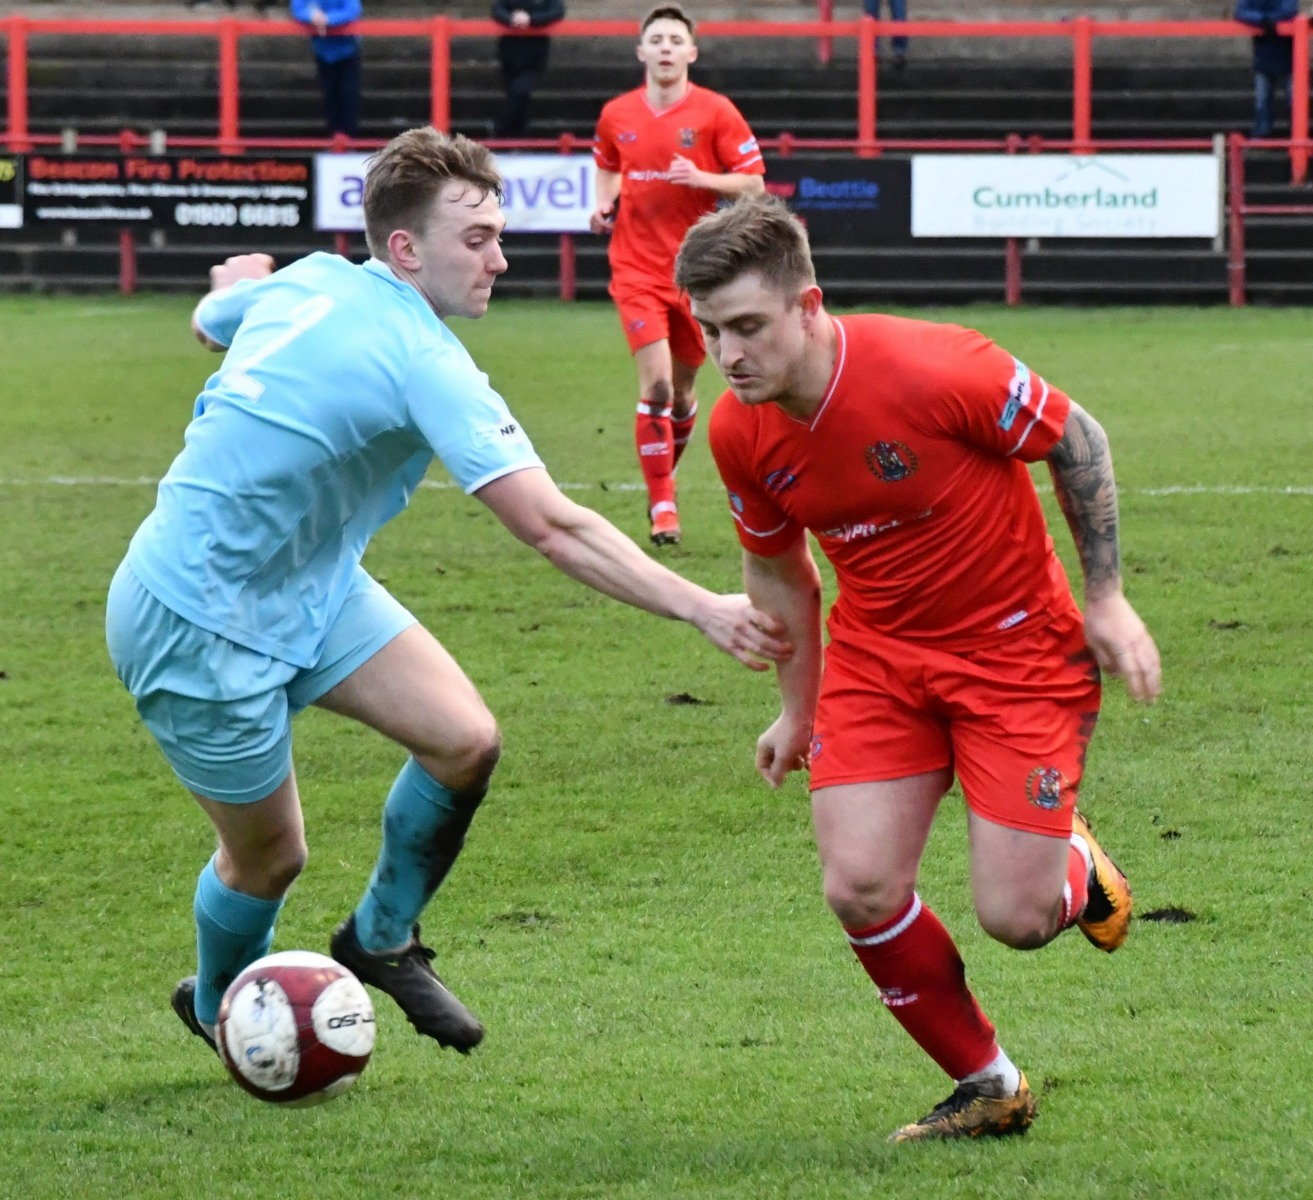 Workington-v-Marske-Utd-Ben-Challis-191579460673657-scaled